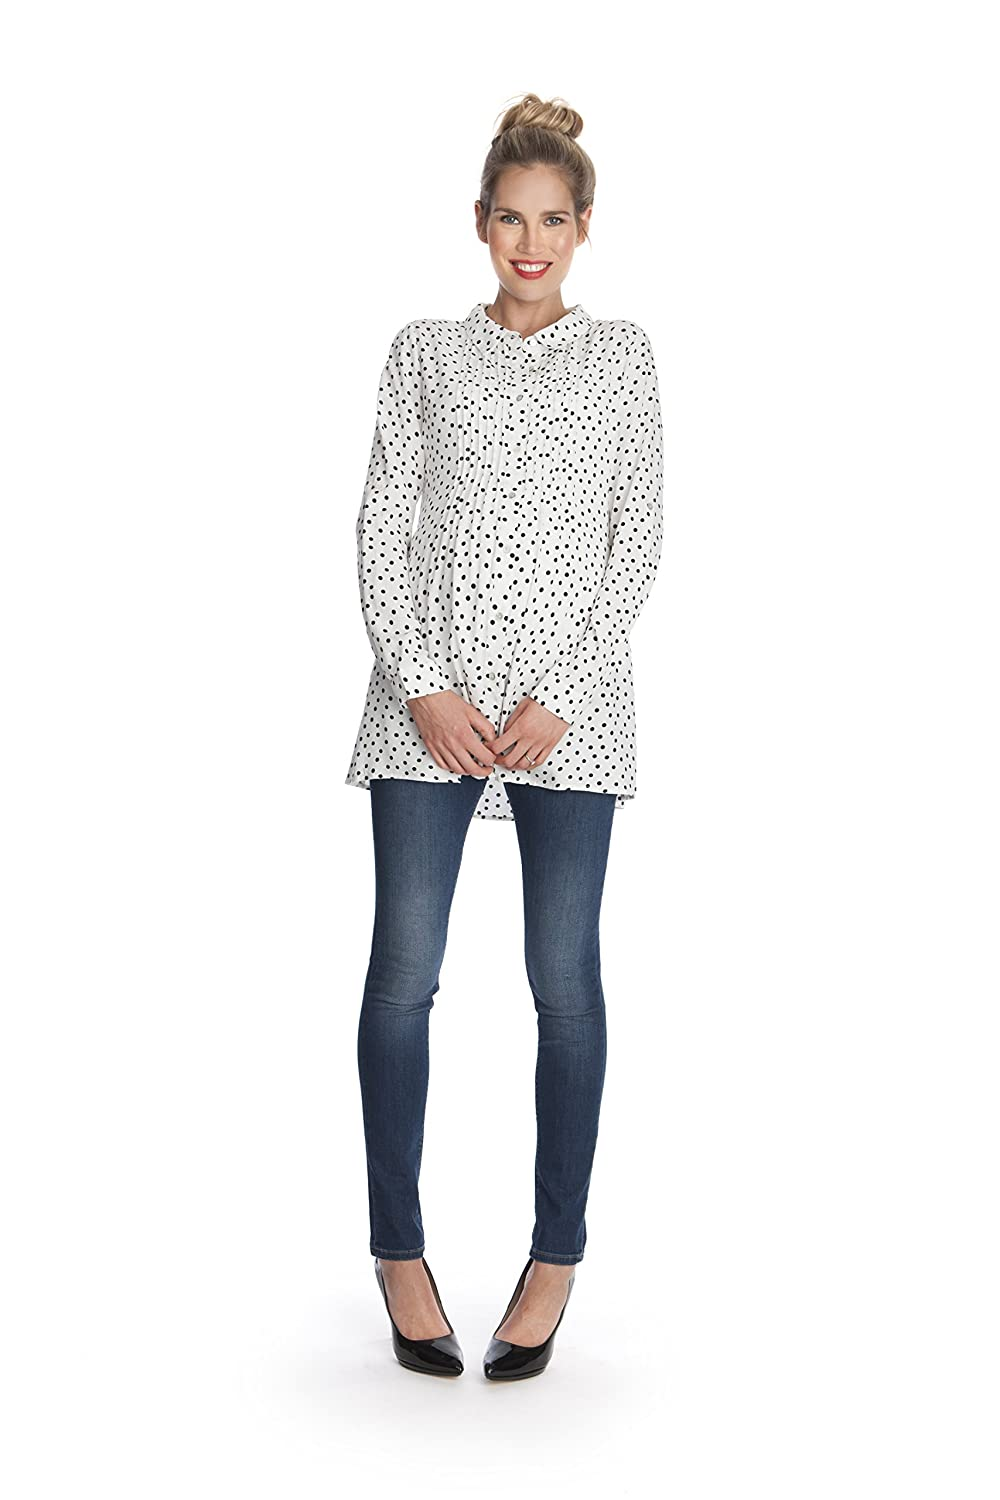 d917cb5976519 Seraphine Women's Polka Dot Button Down Maternity Blouse at Amazon Women's  Clothing store: